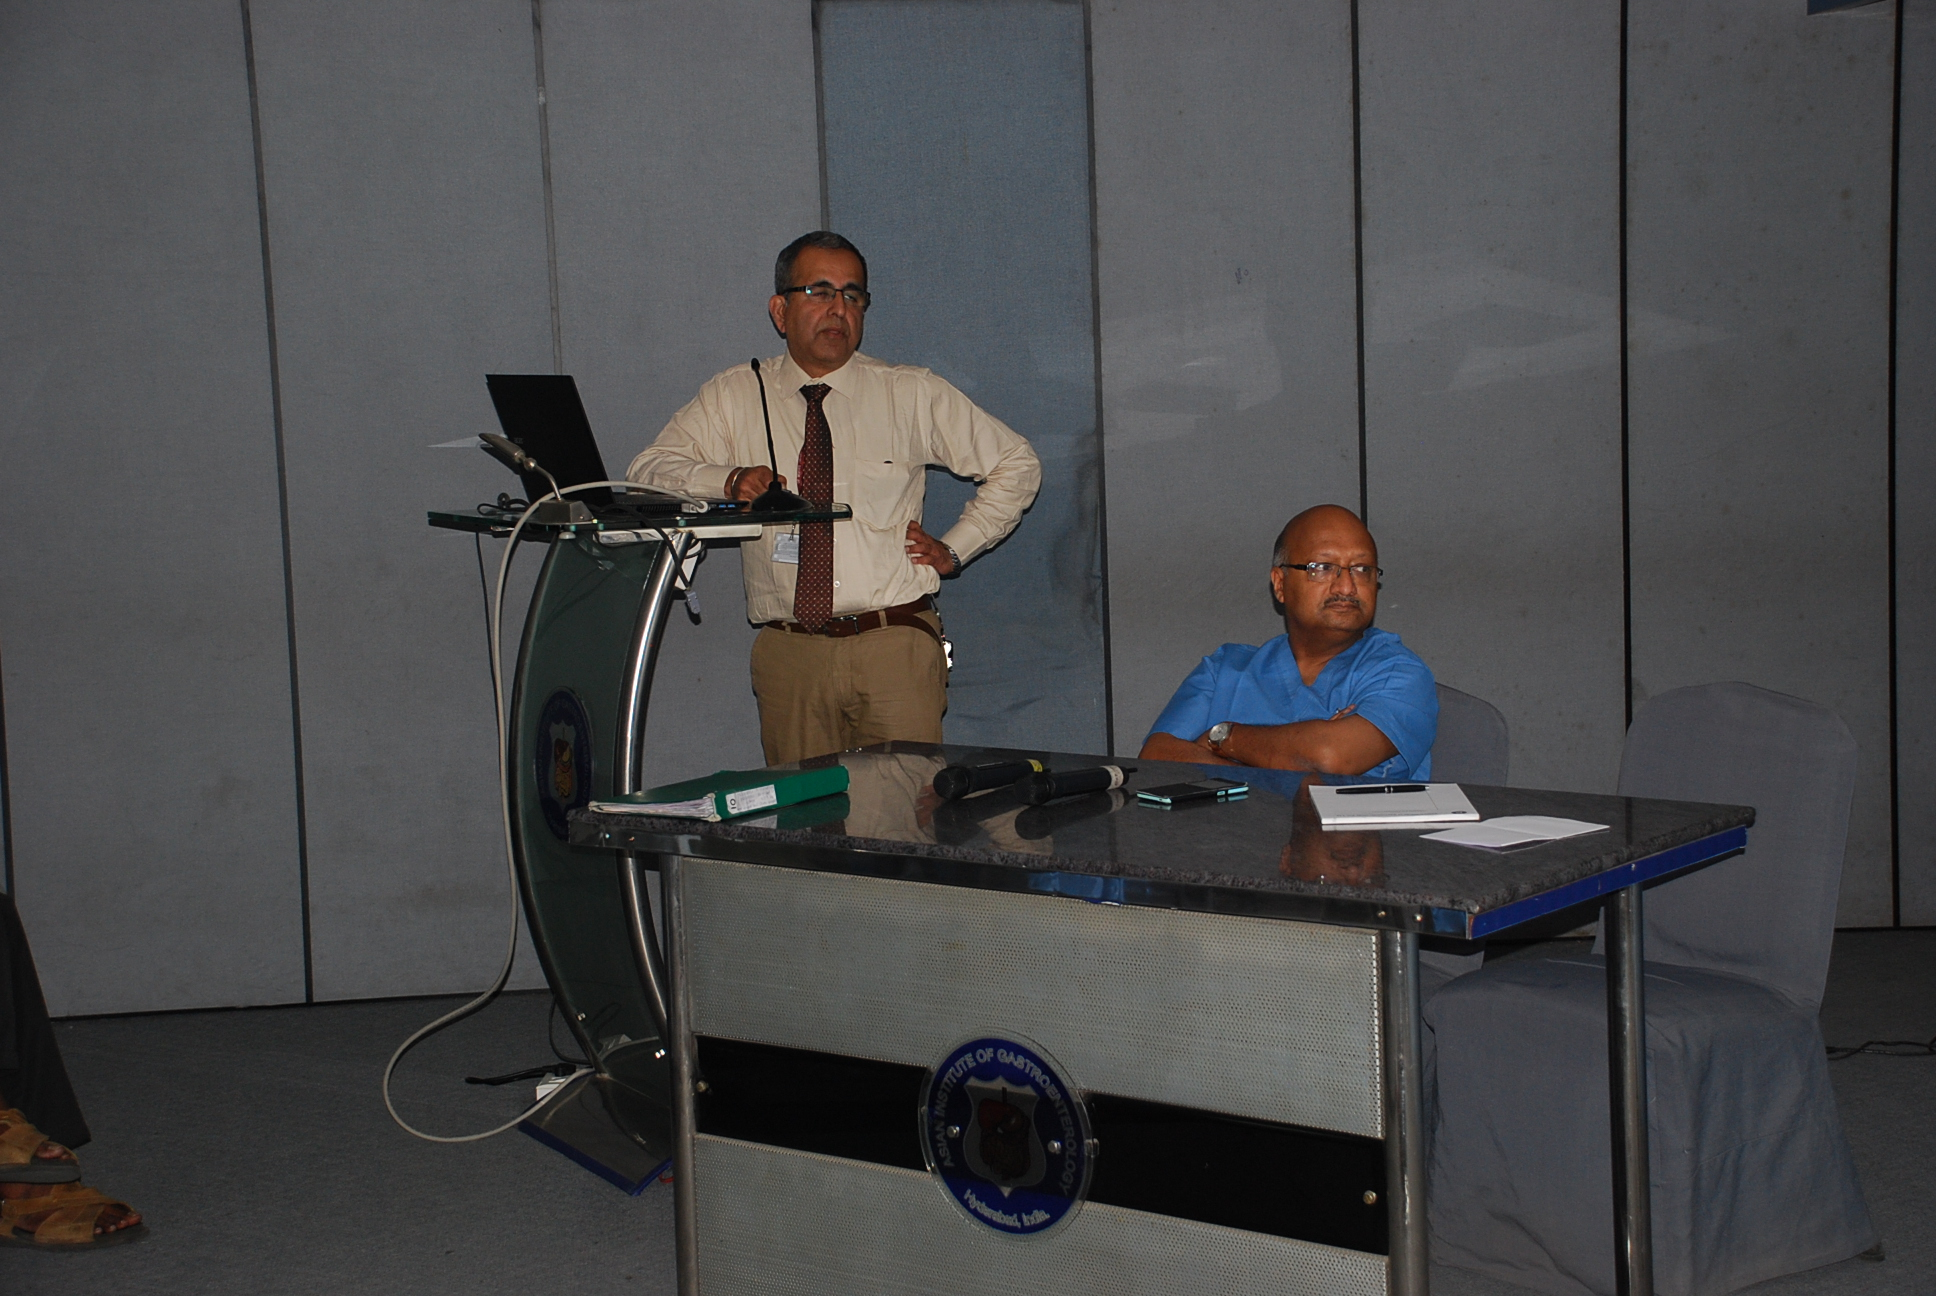 Doctors giving presentation to patients